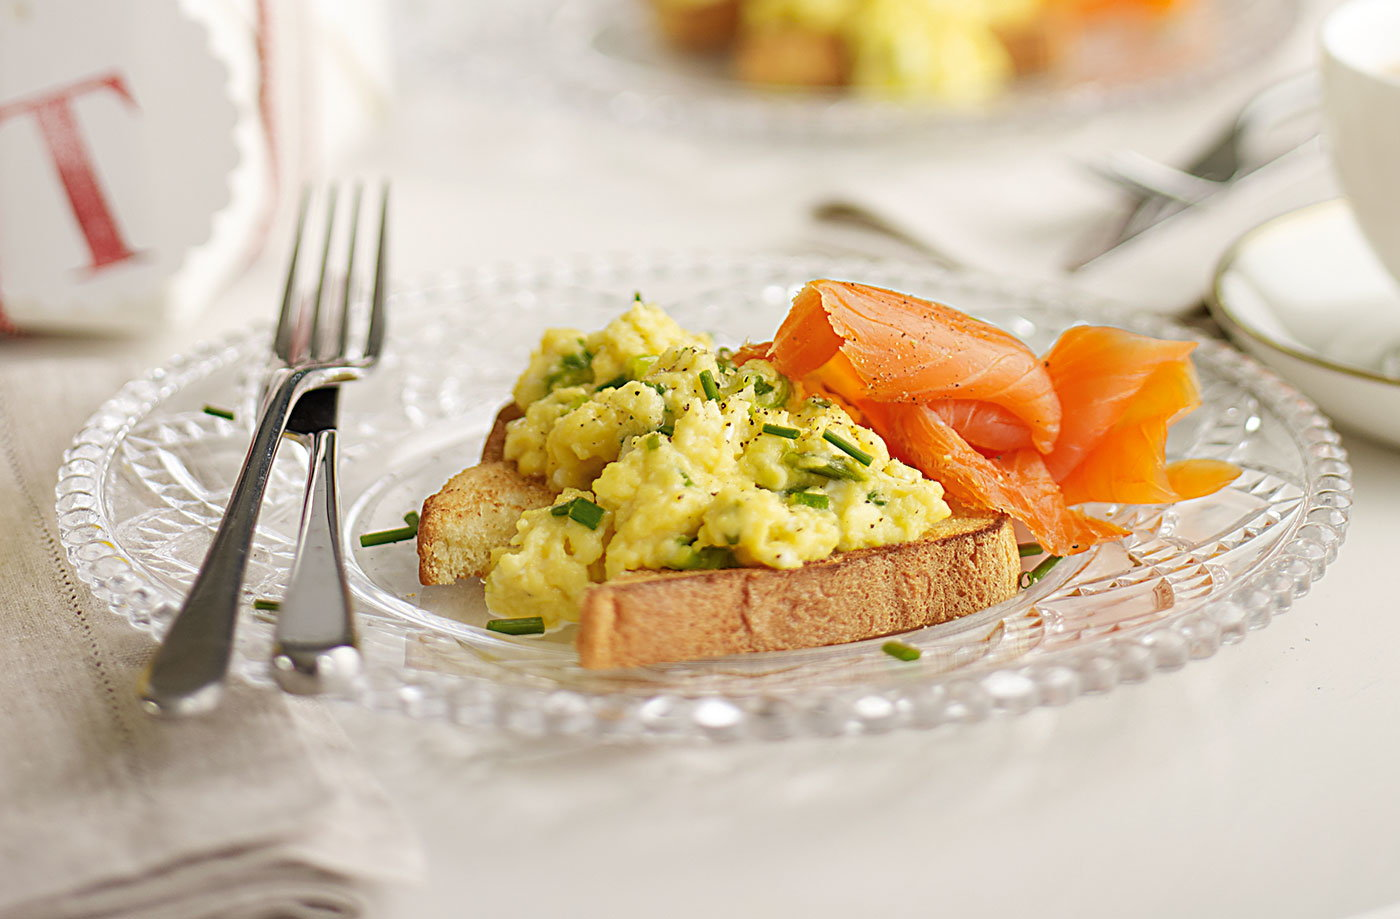 Smoked salmon and scrambled eggs recipe